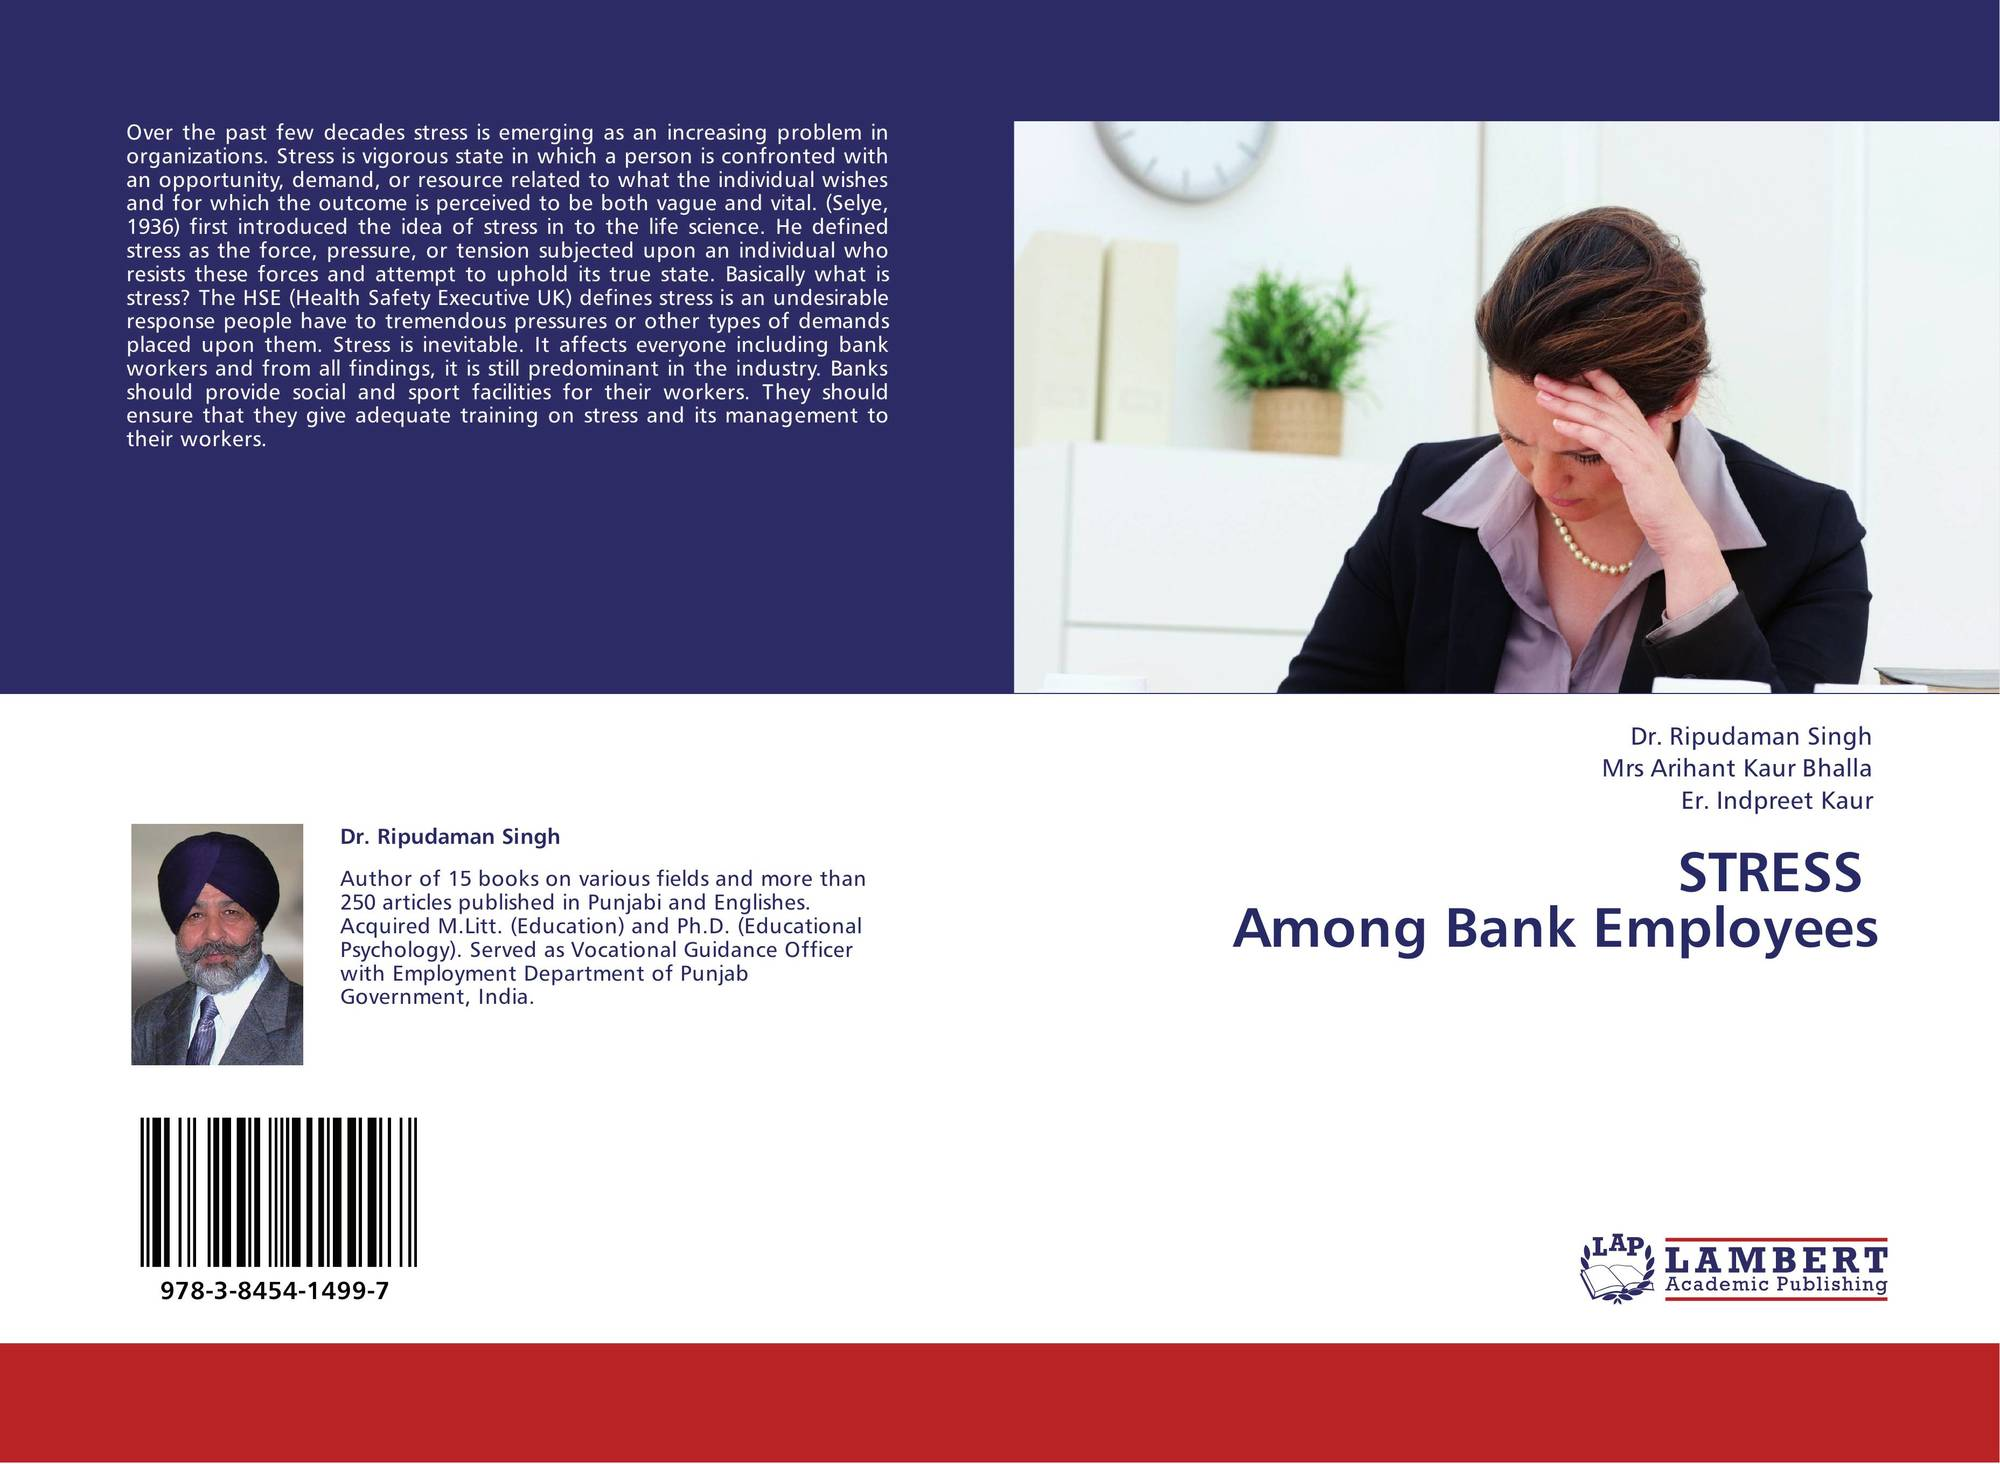 bank employee stress Contributing job stress and the relationship between job stress and employee performance bank employees in this study refer to brach level managers, operational managers, supervisors and job stress & its impact on employee performance.